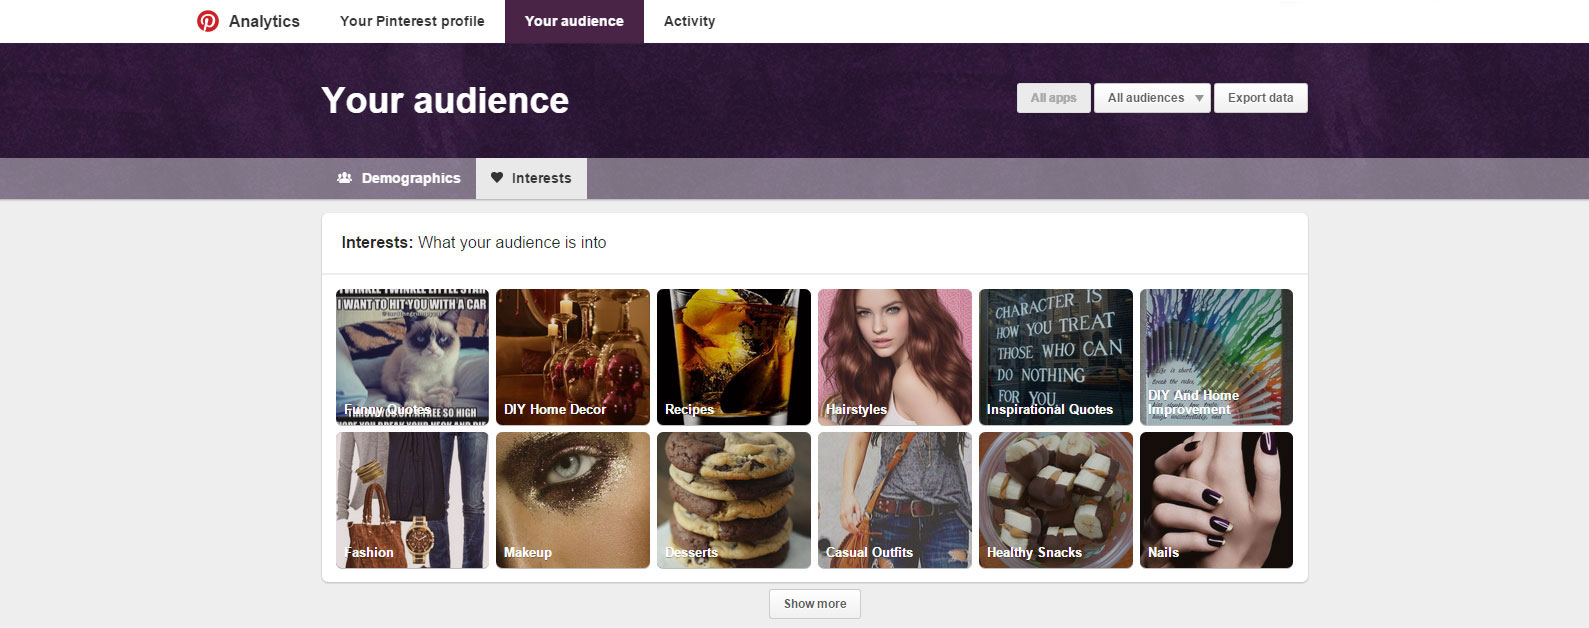 Pinterest Ananlytics Your Audience